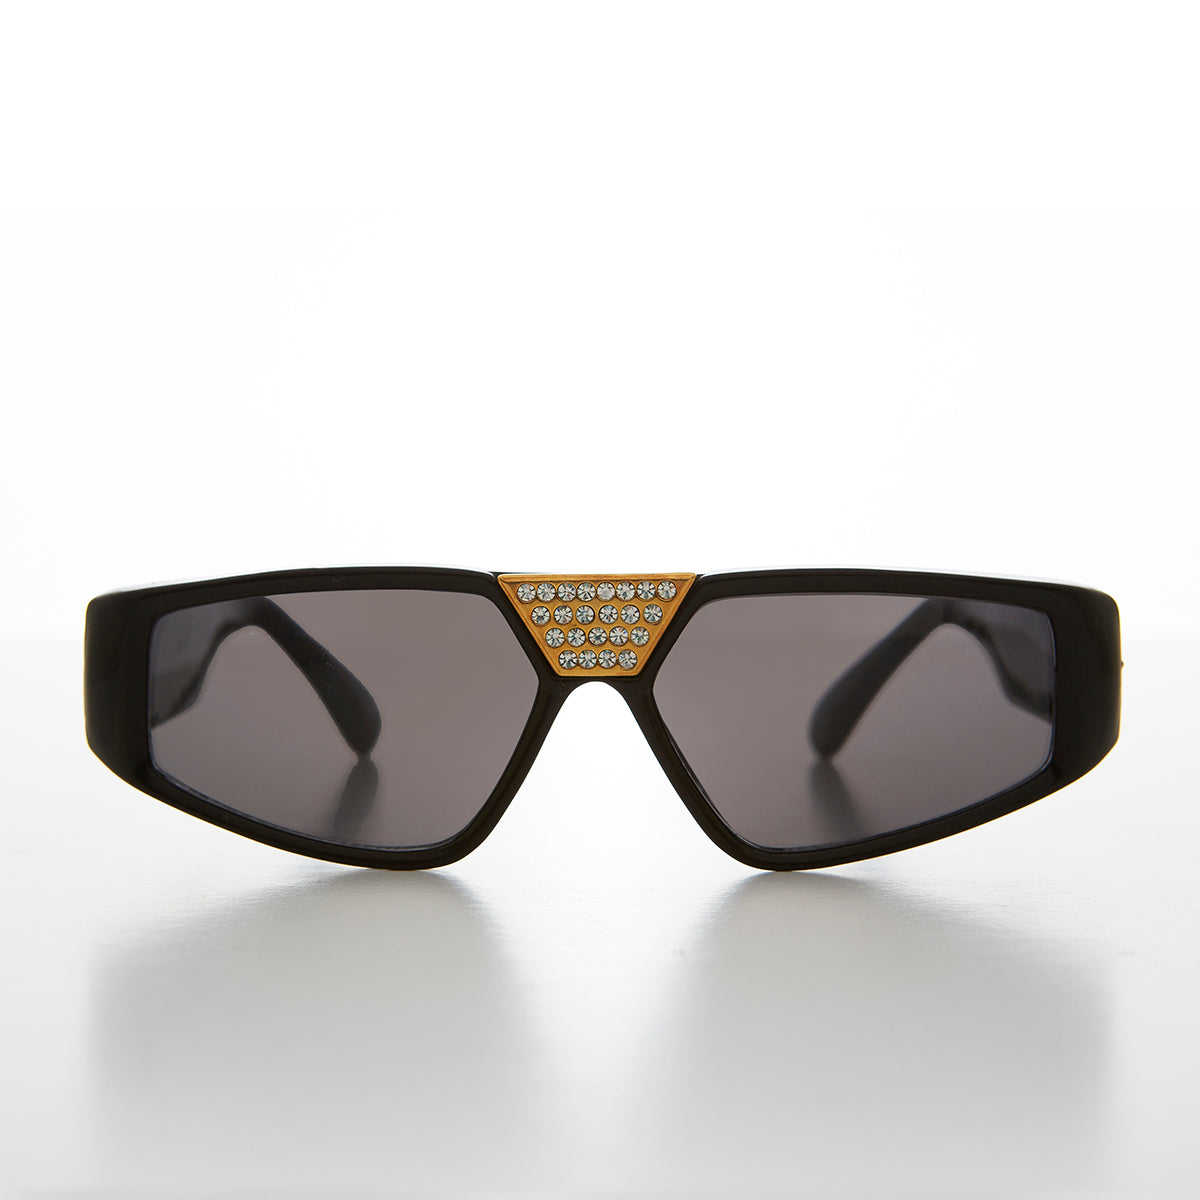 Flat Top Hip Hop Vintage Sunglass with Rhinestone Bridge